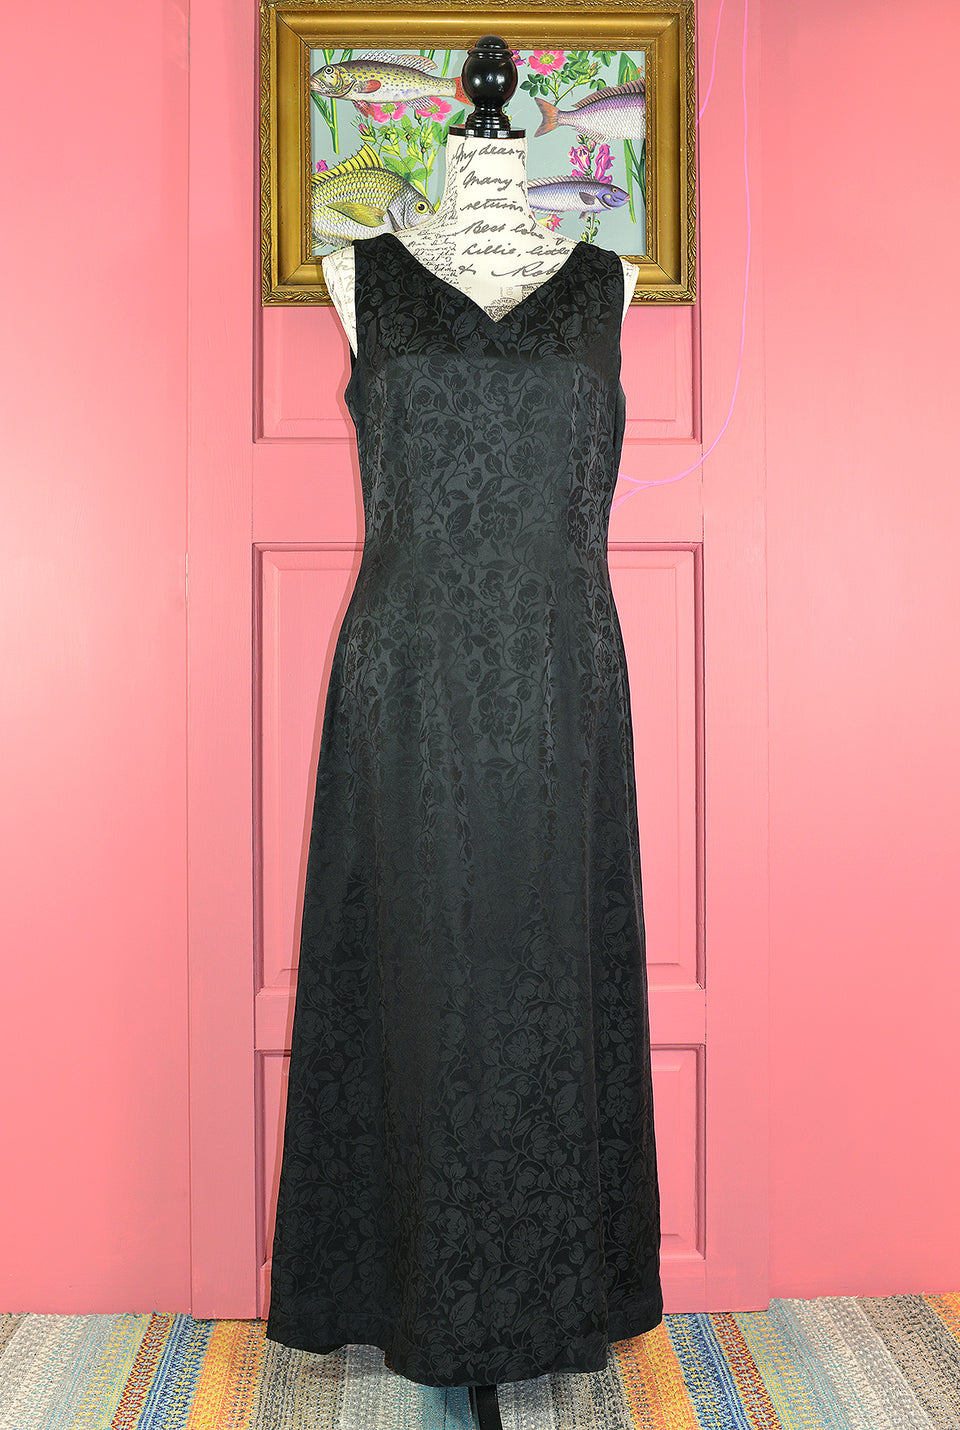 MONSOON Sleeveless Black Jacquard Silk Full Length Dress, Size 12. Pre-loved.